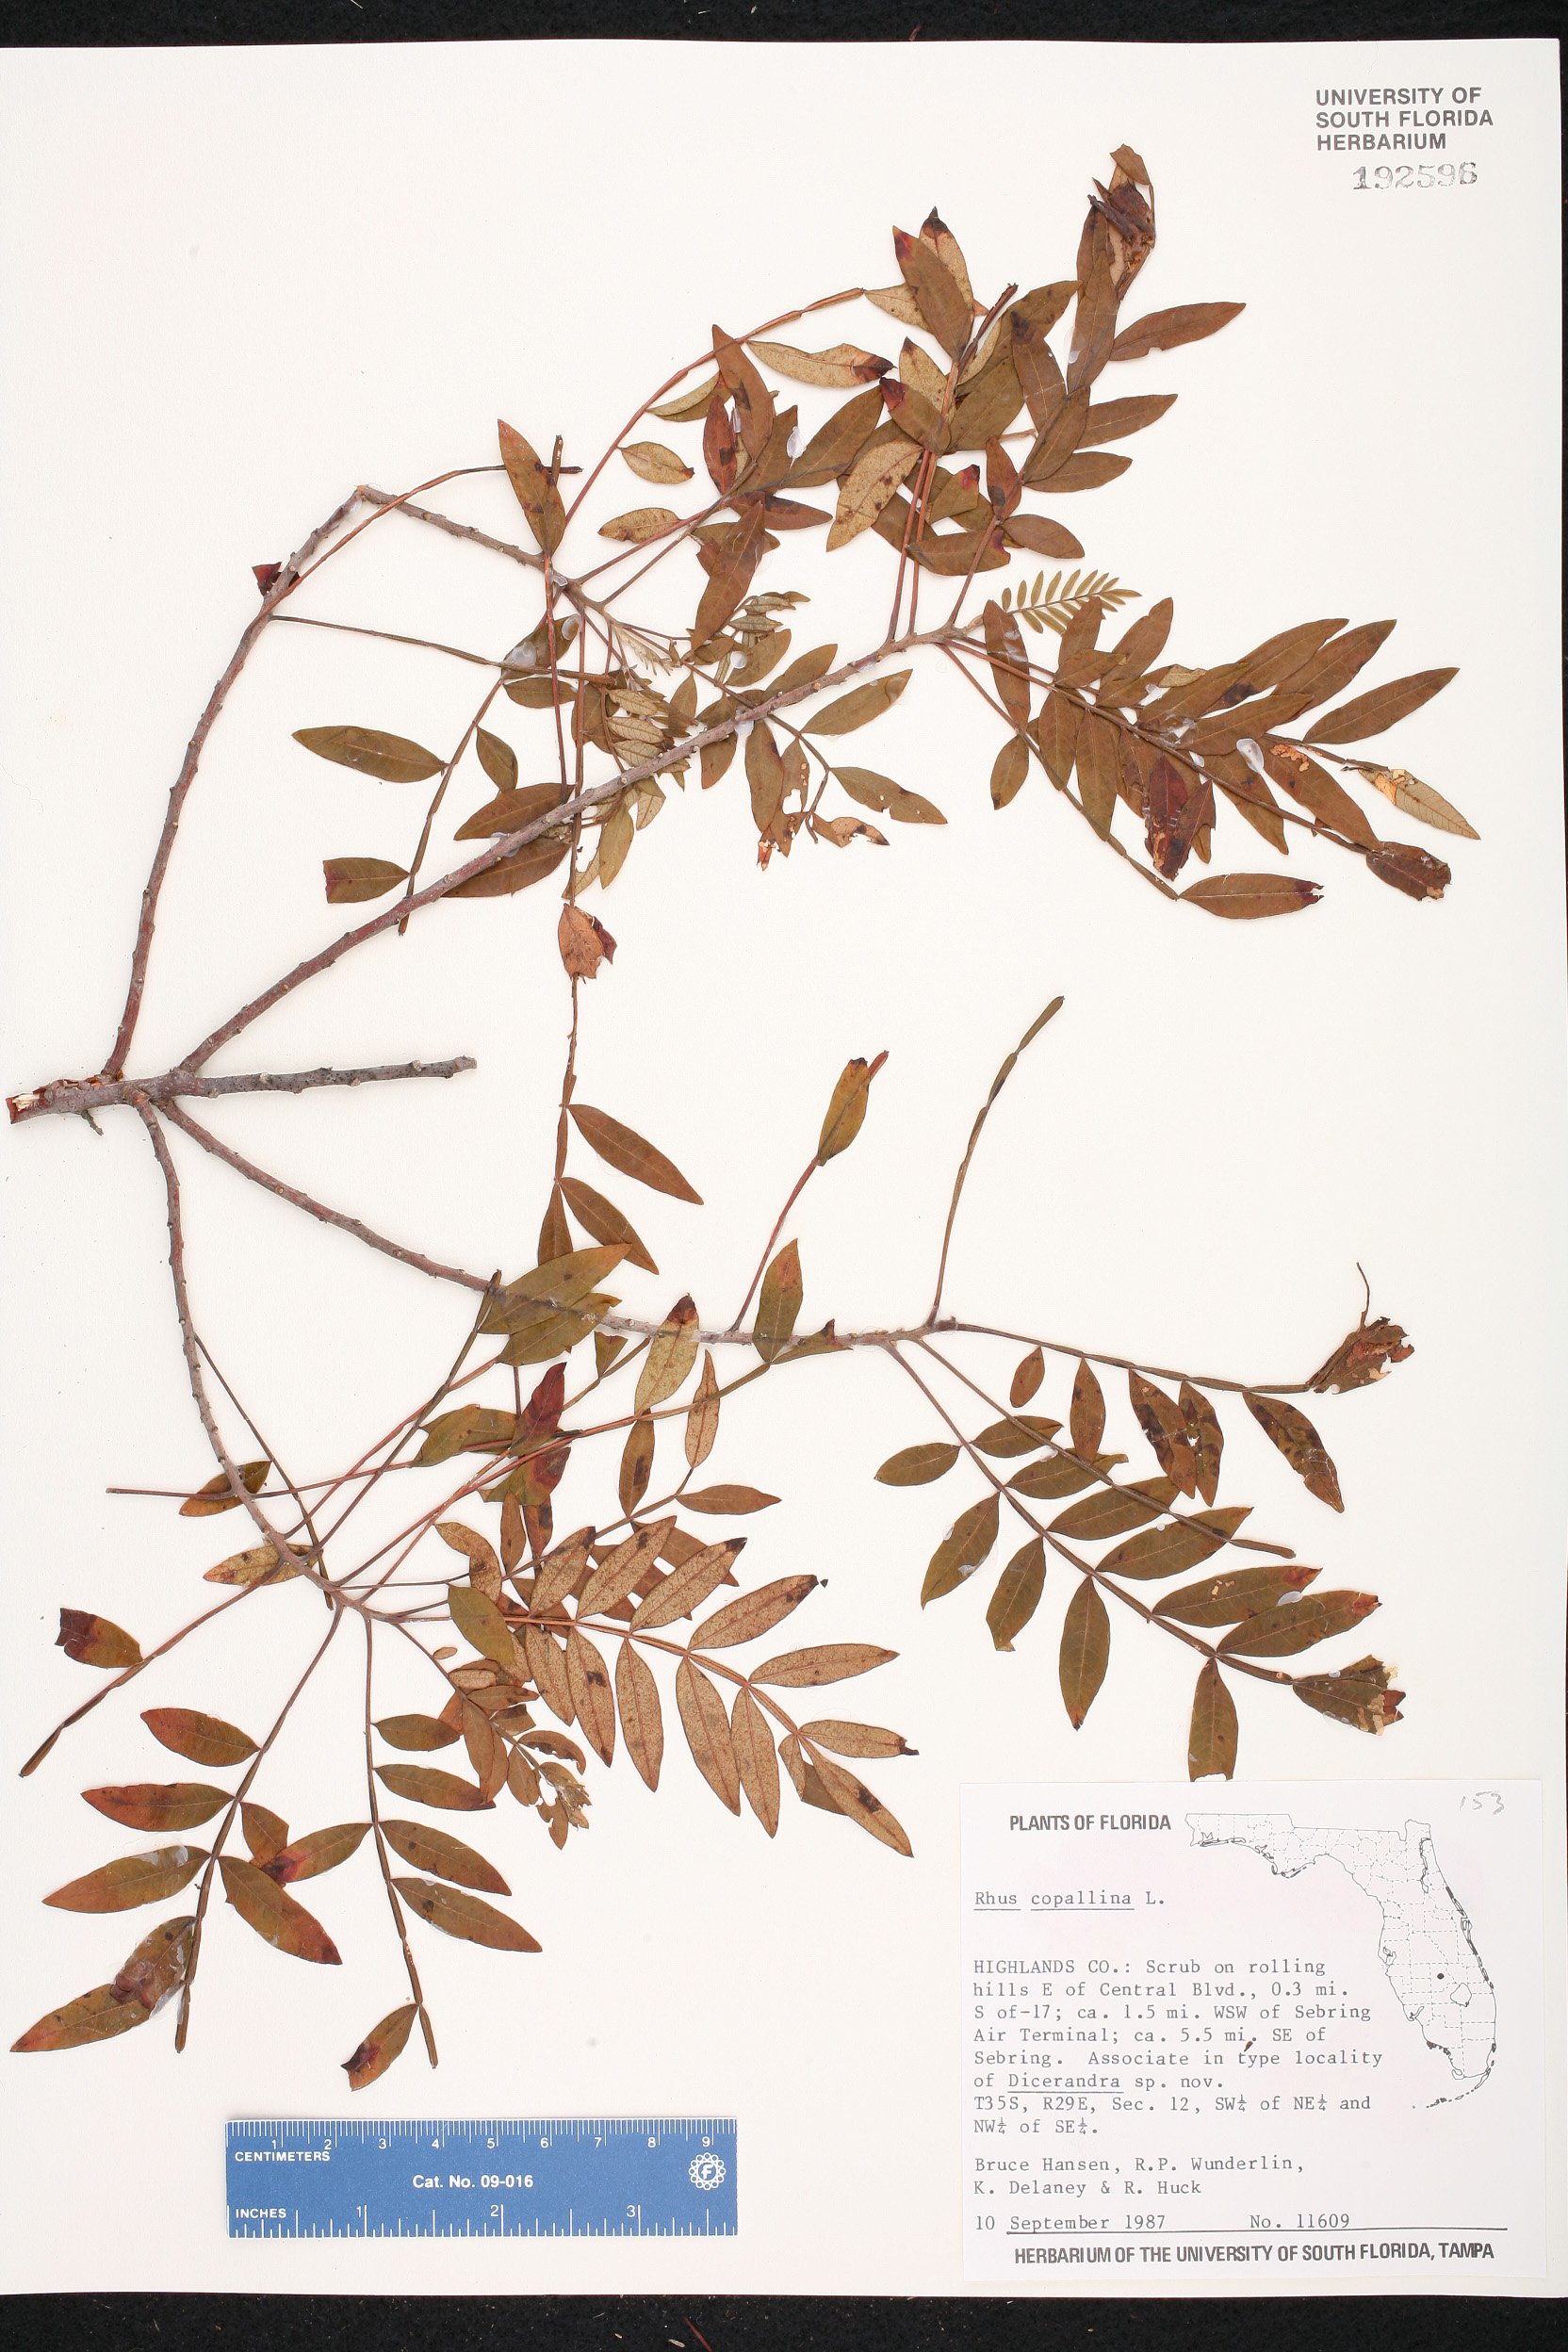 company dating rhus Find the perfect rhus toxicodendron stock photo huge collection, amazing choice, 100+ million high quality, affordable rf and rm images no need to register, buy now.